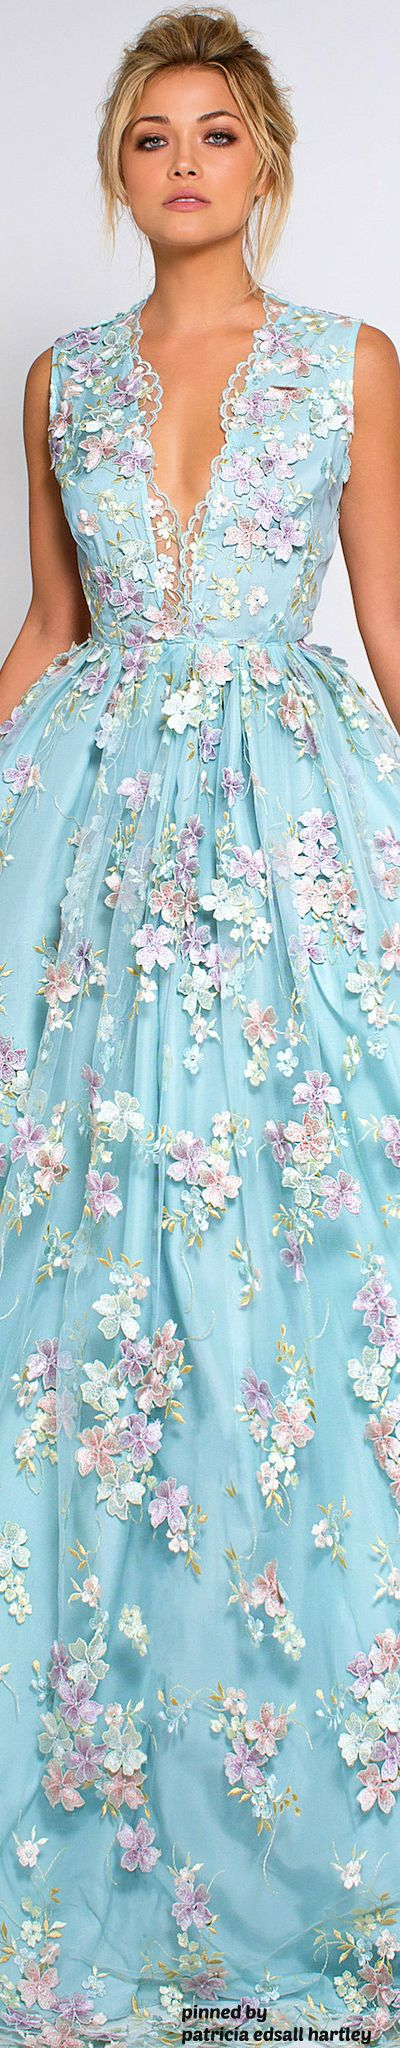 best images about prints u florals u embroidery on pinterest